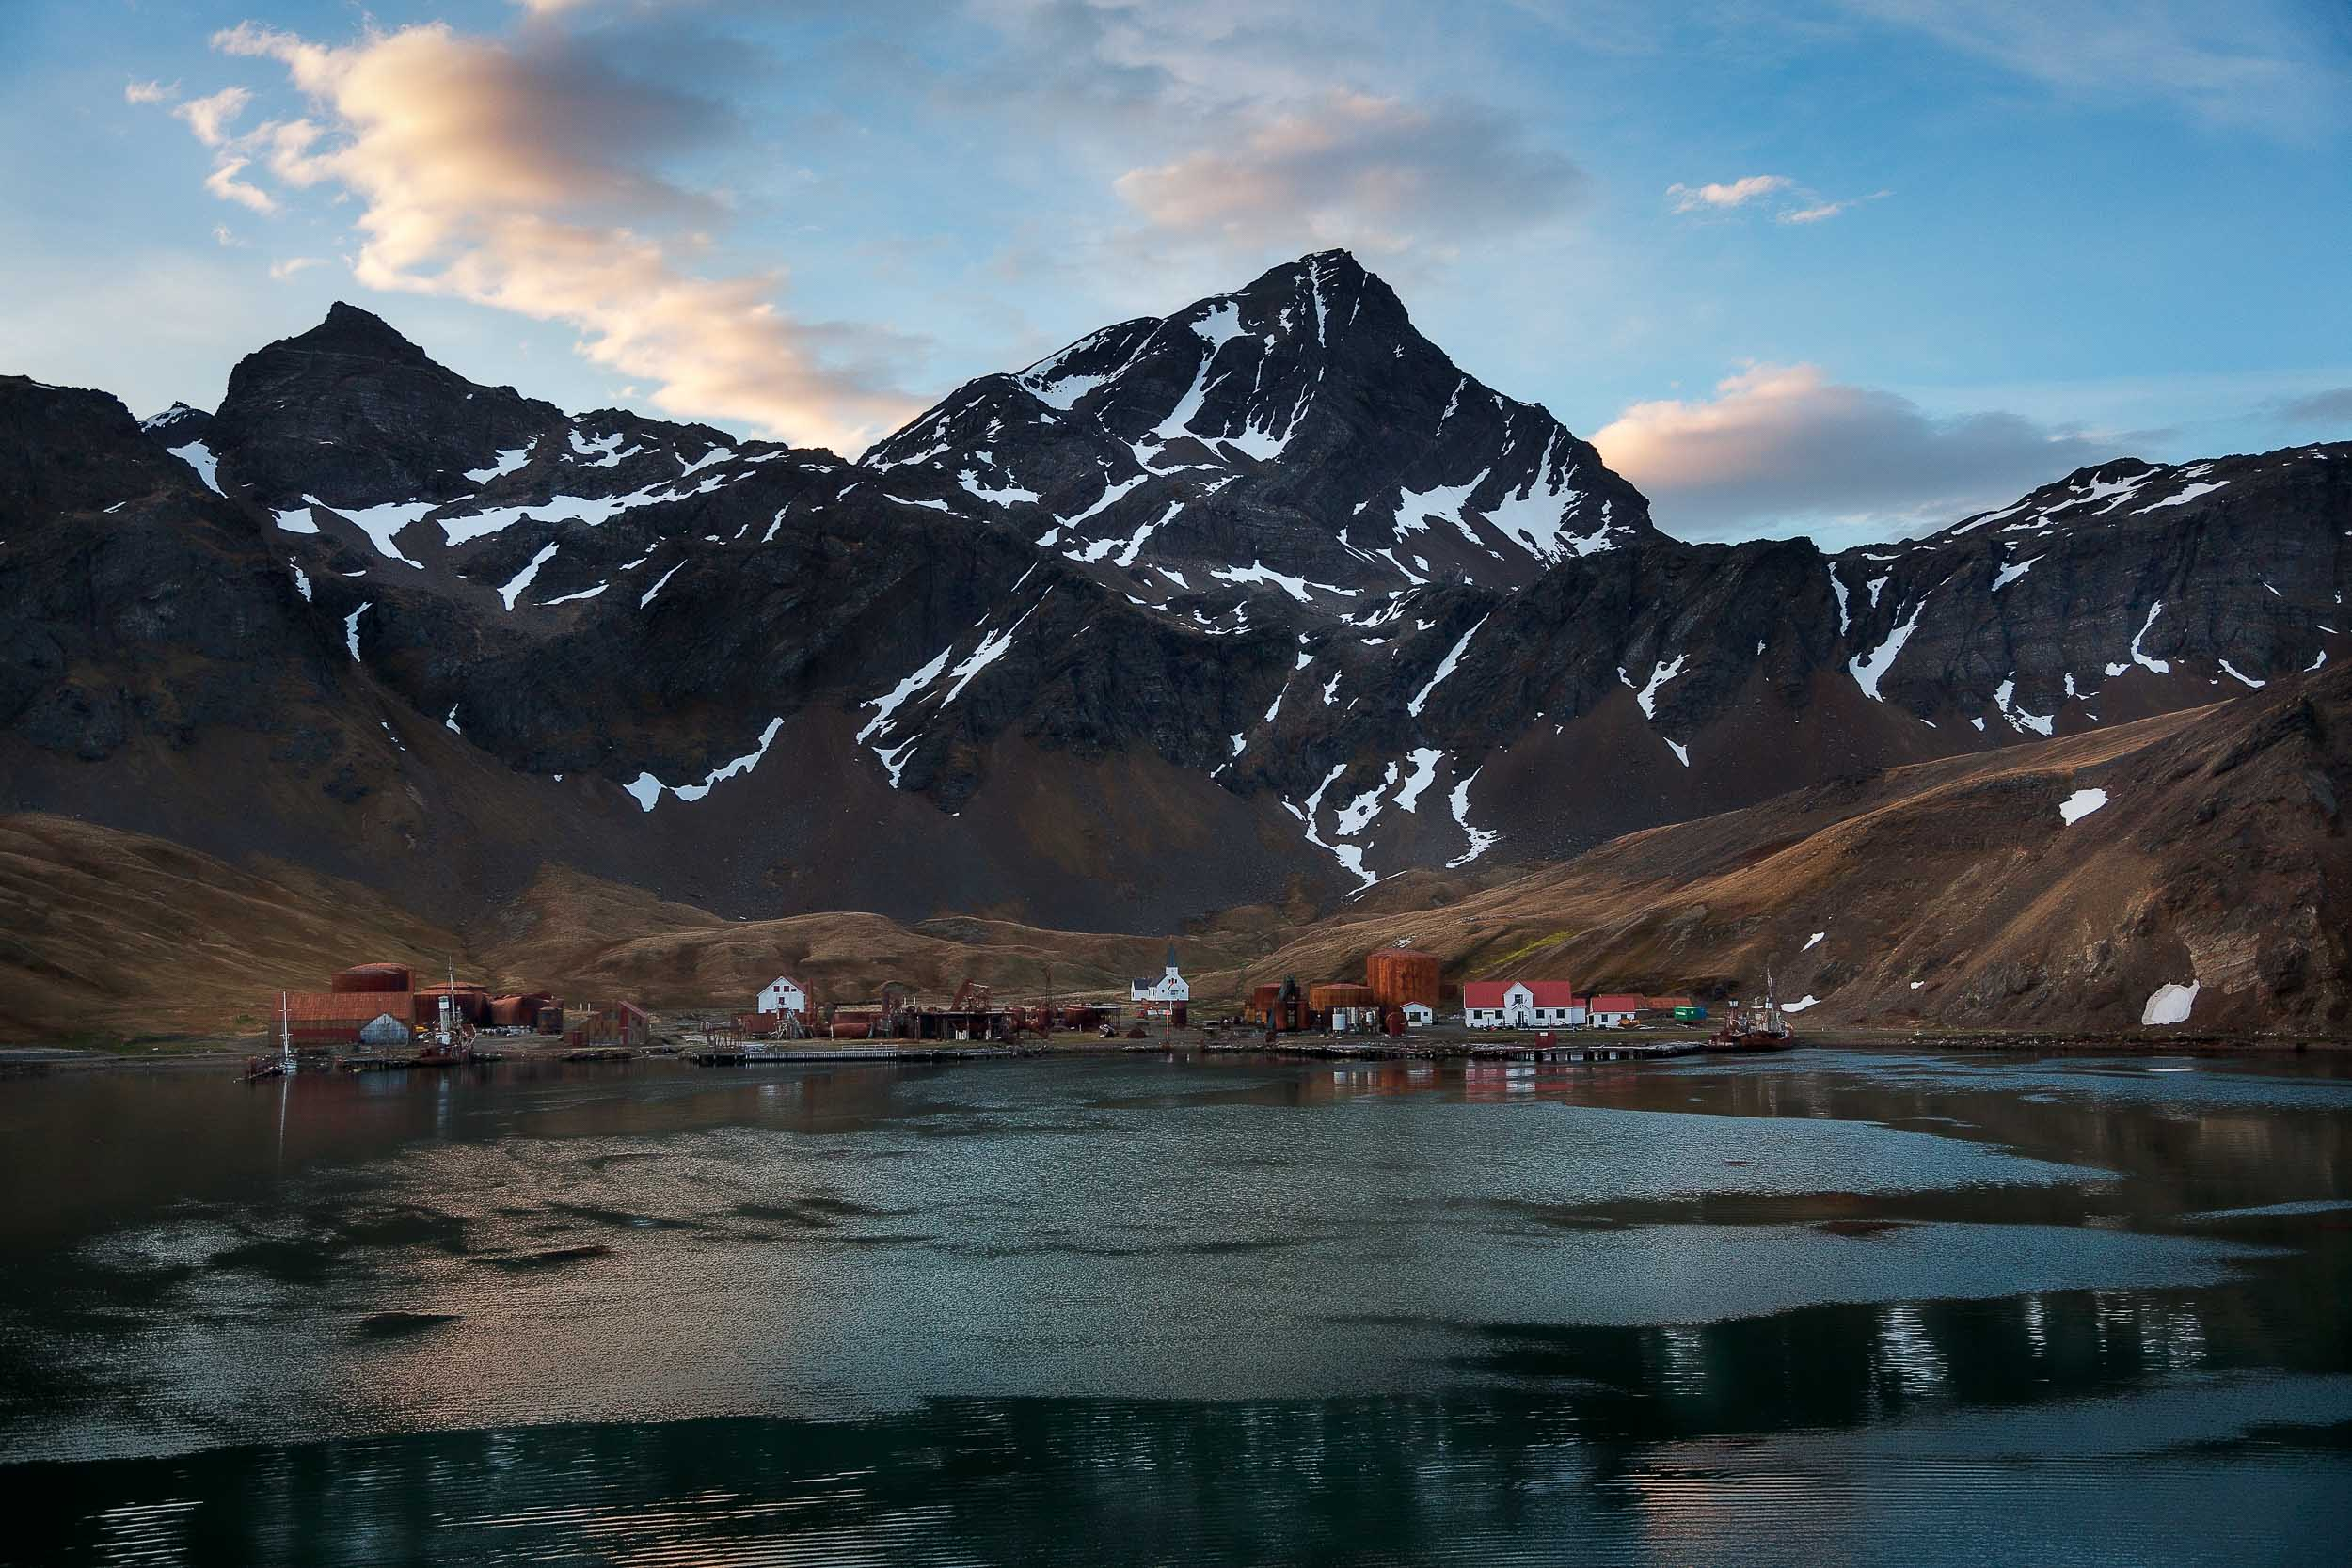 Overview of the    Grytviken Whaling Station    set amongst spectacular mountain scenery on    South Georgia Island   .